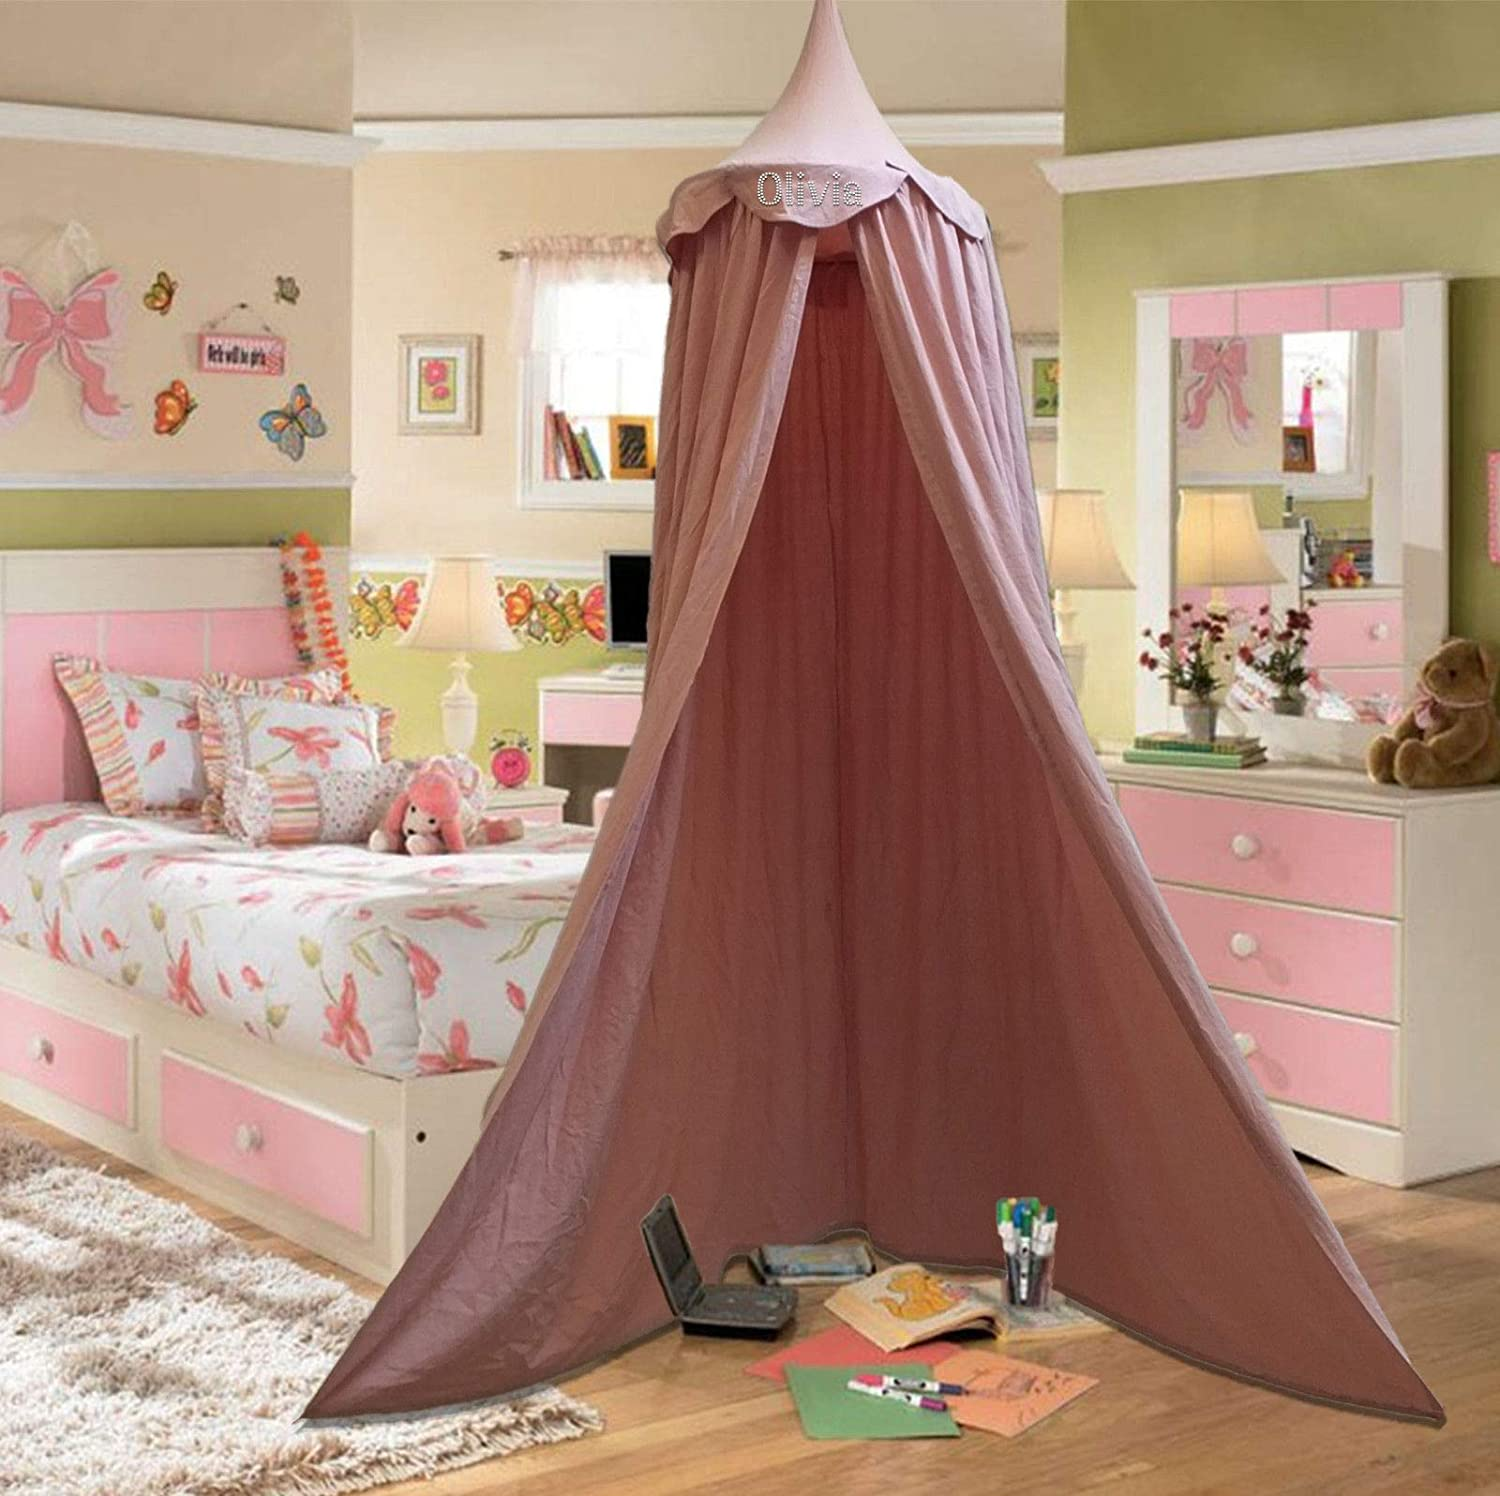 Teepee Room Decoration for Baby Personalised Children Bed Canopy Round Dome Pink Cotton Mosquito Net Kids Princess Play Tents Girls Nursery Decorations